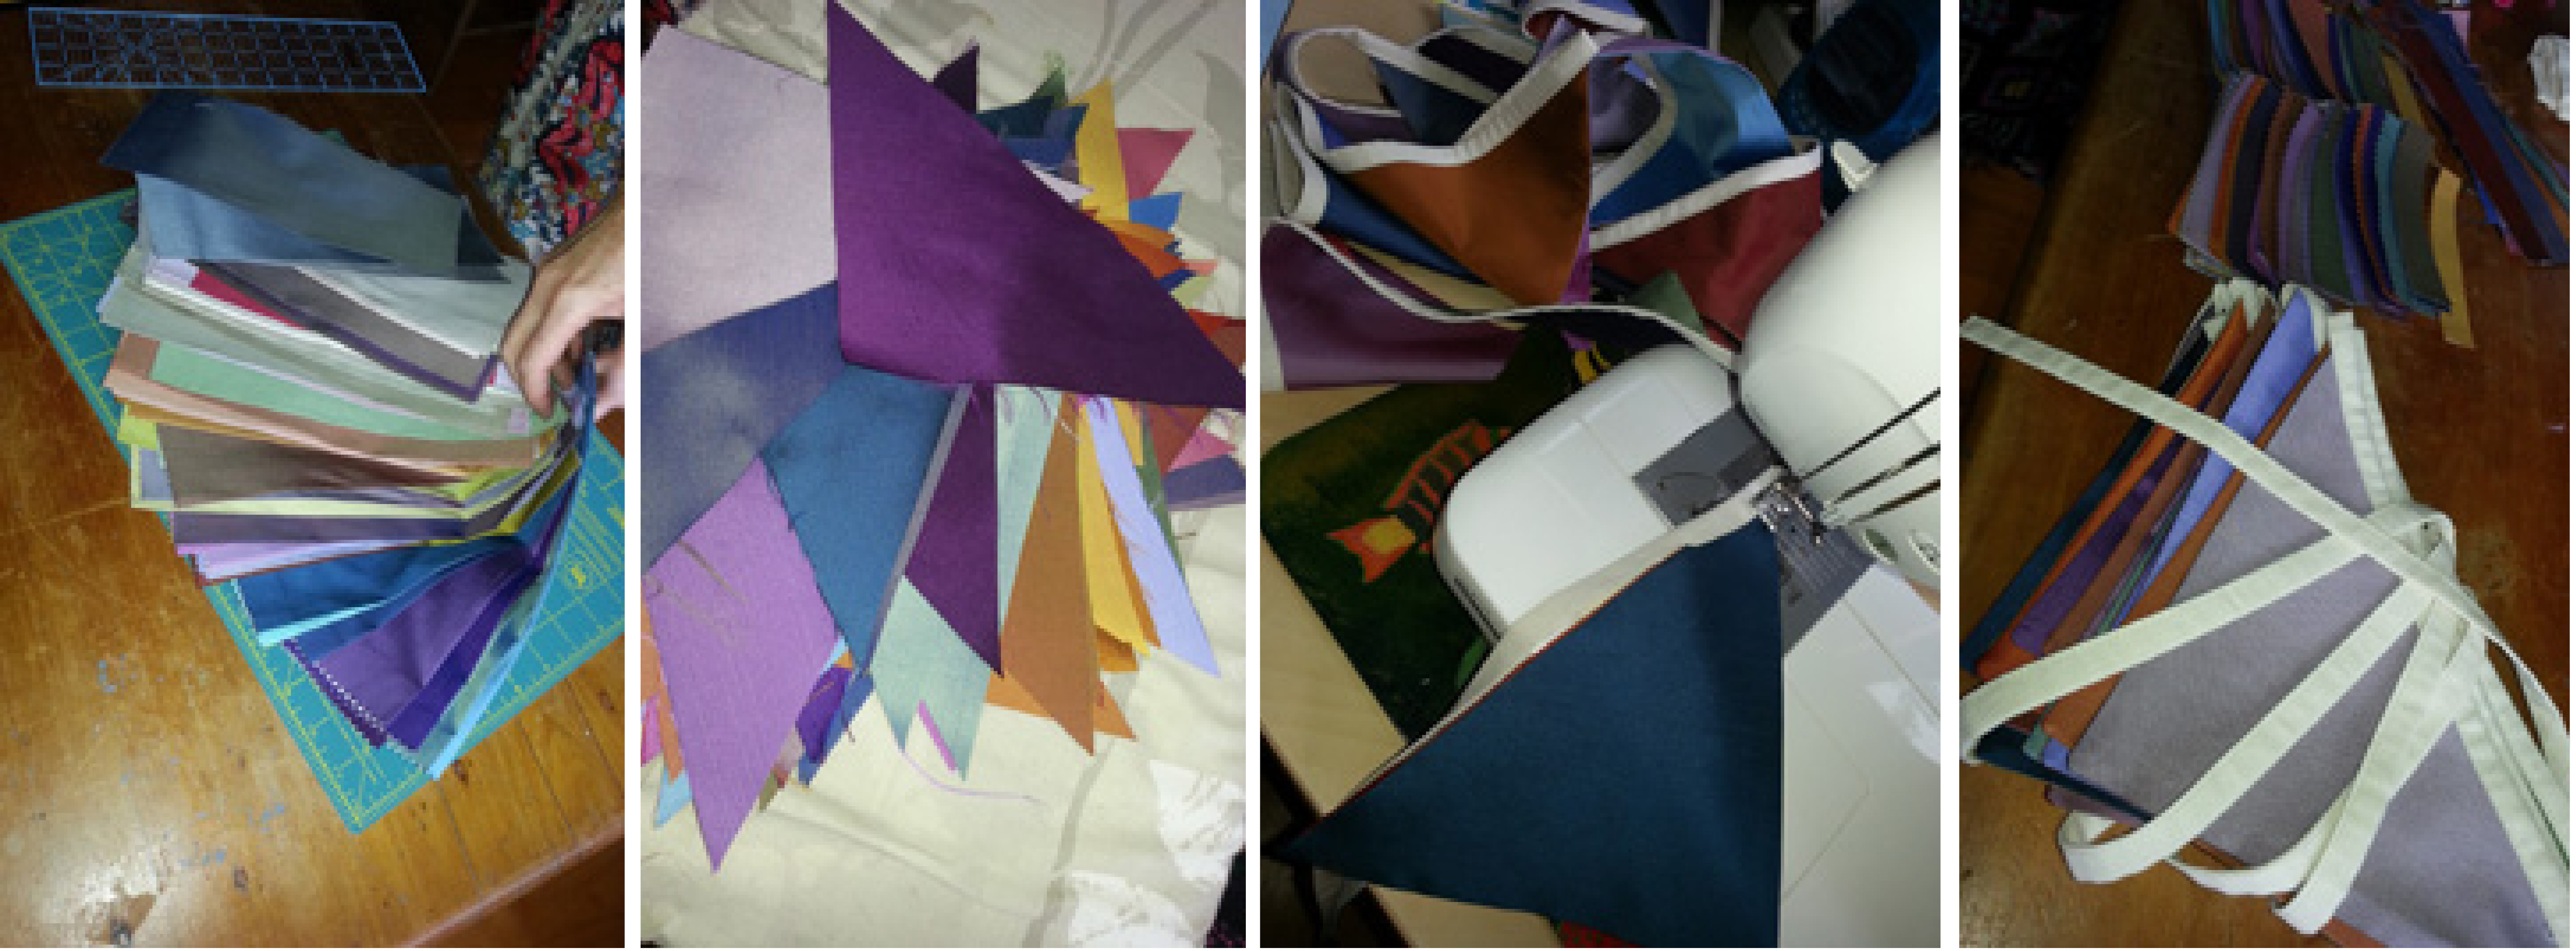 bunting upcycled from curtain samples